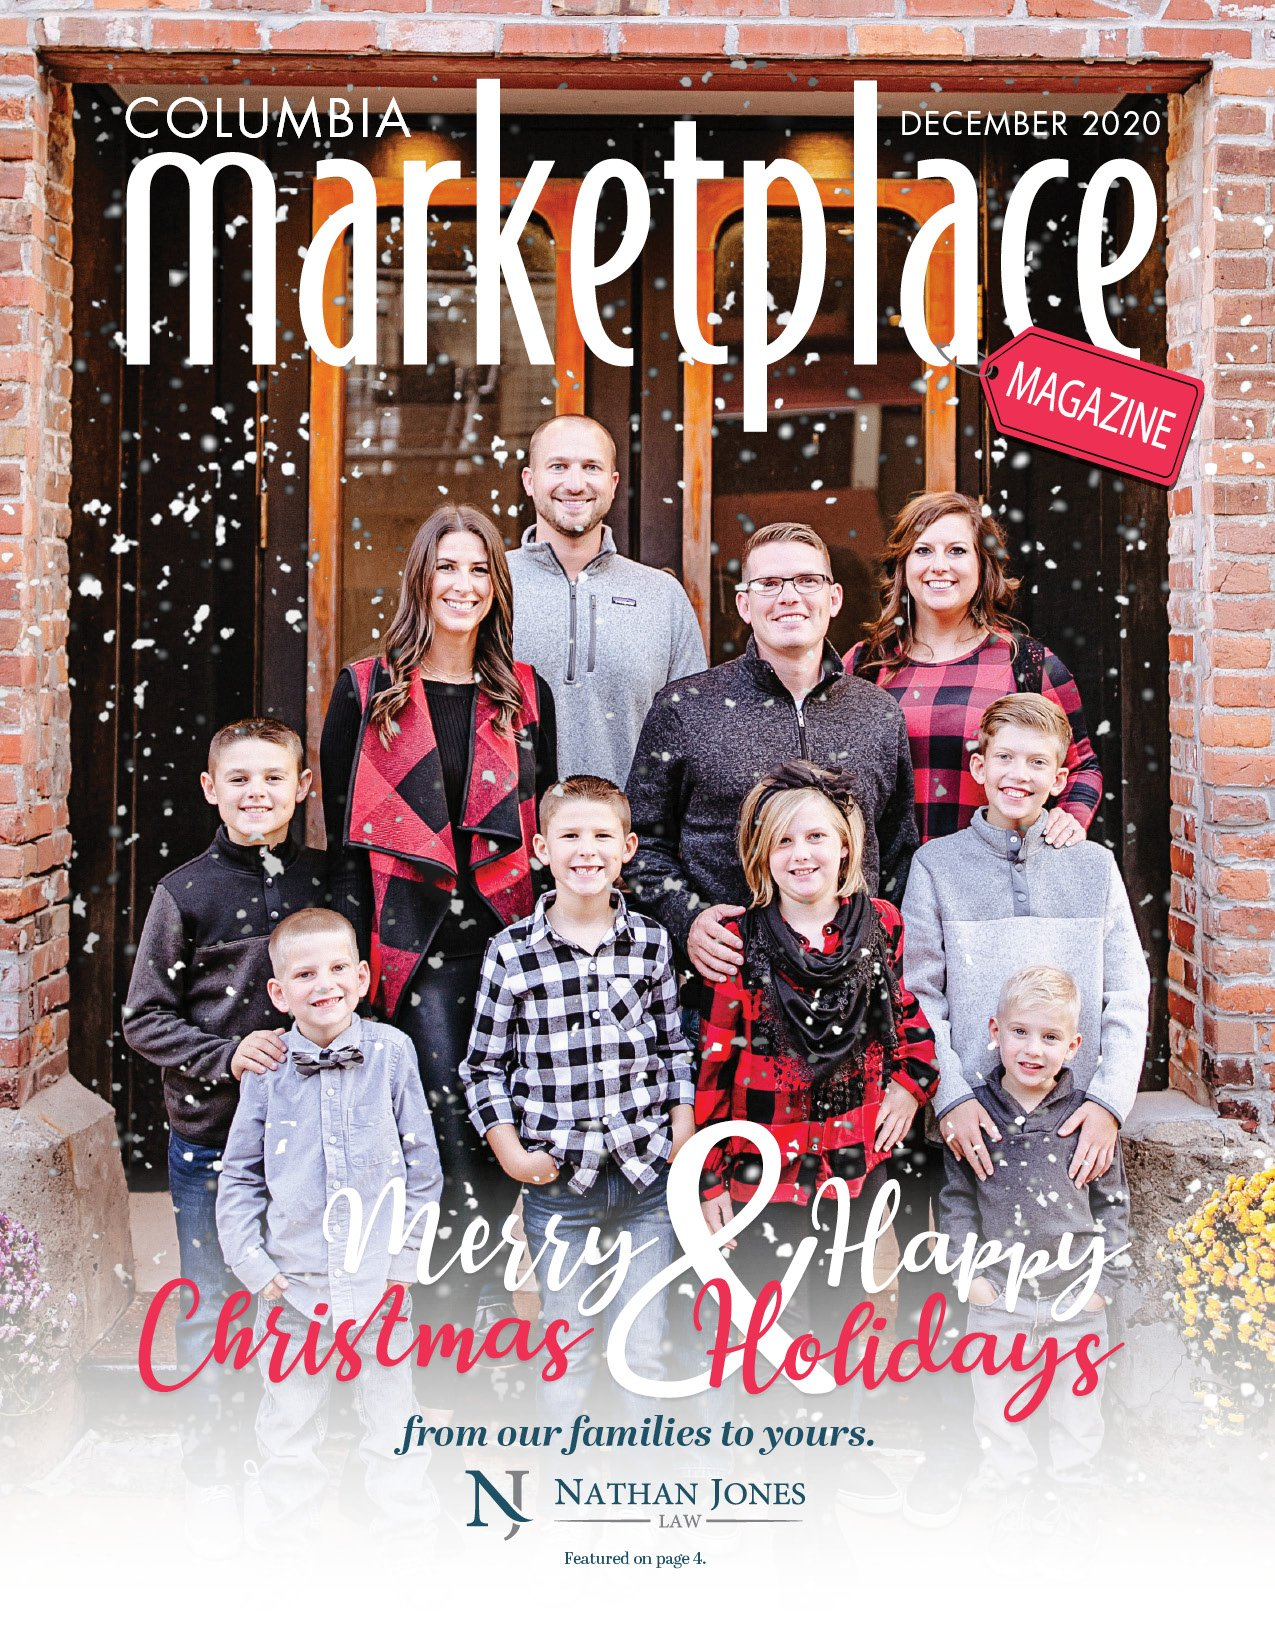 Marketplace Magazine by Modern Media Concepts December 2020 Edition Featuring Nathan Jones Law Columbia MO 1